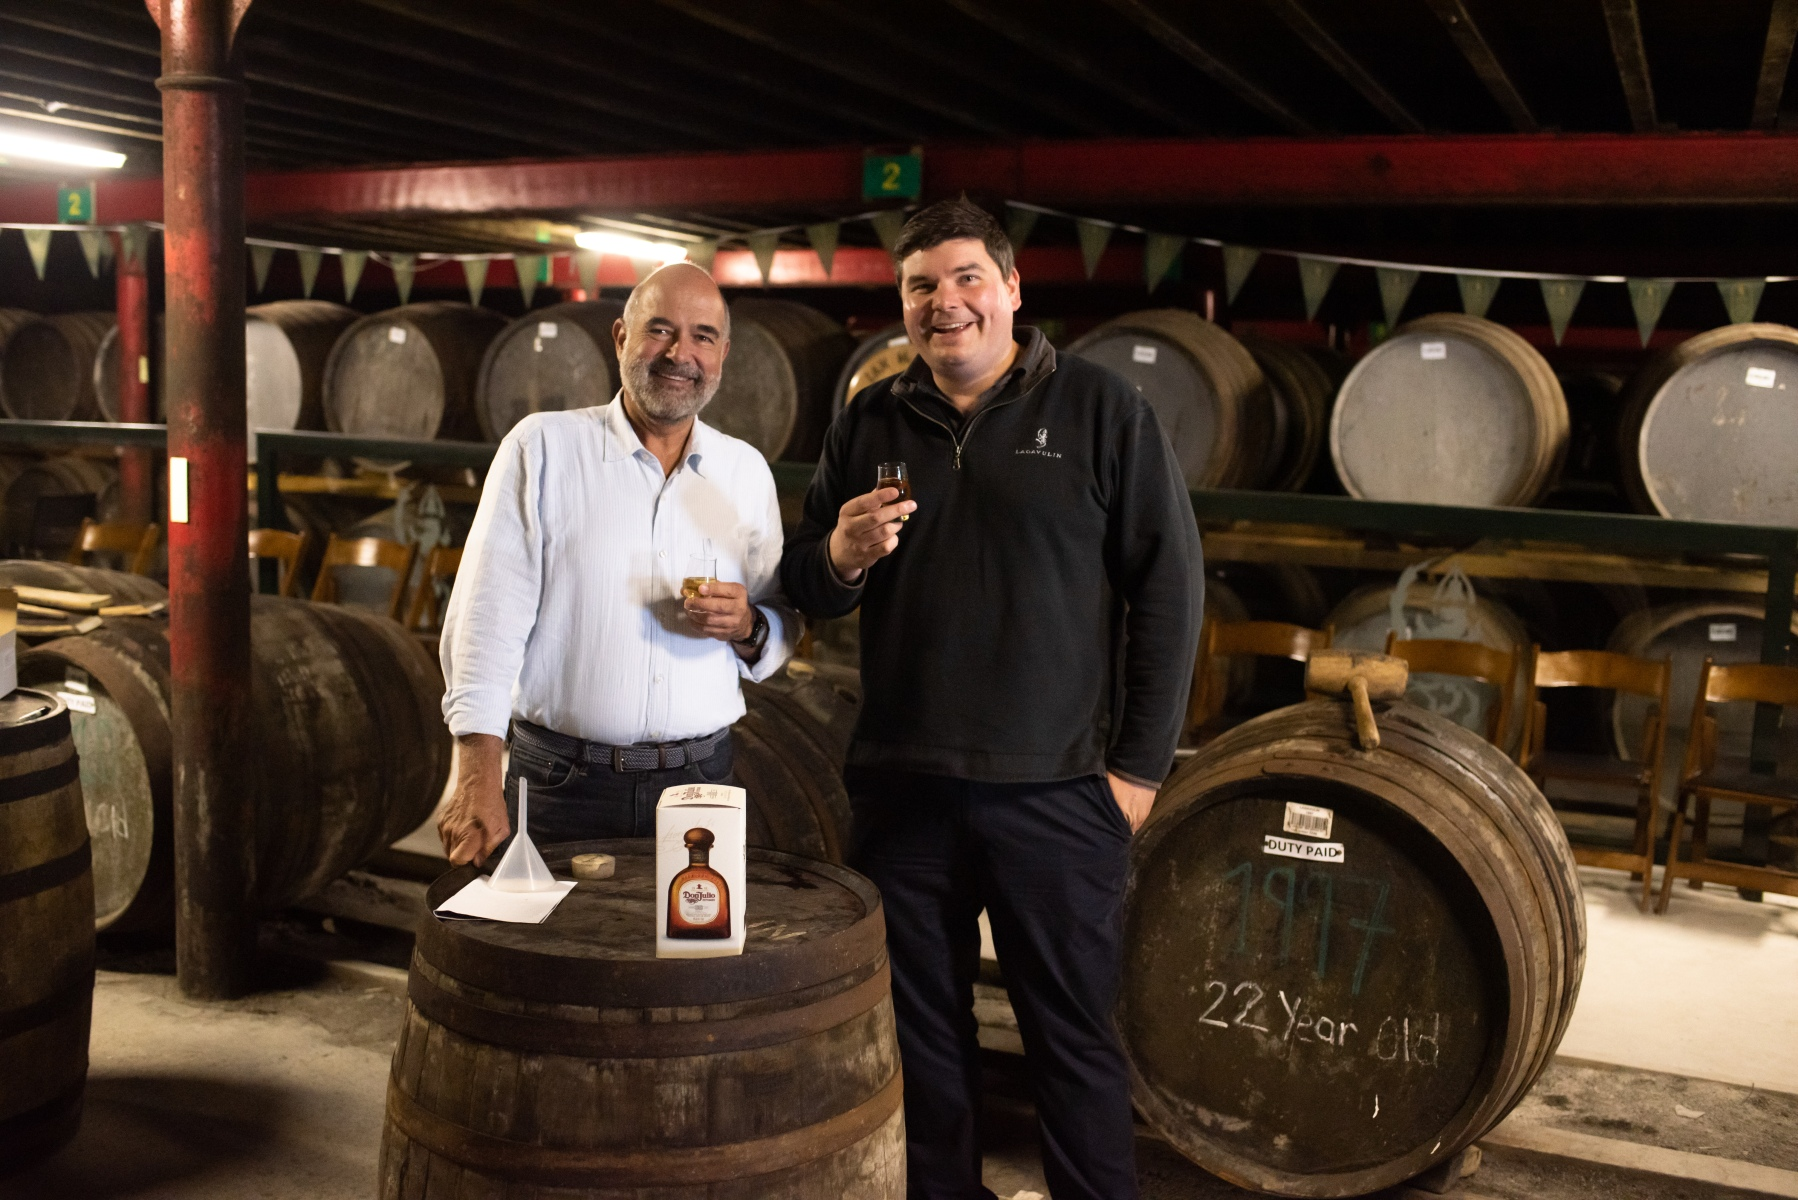 Enrique de Colsa and Colin Gordon Taste Tequila Don Julio Reposado, Double Cask